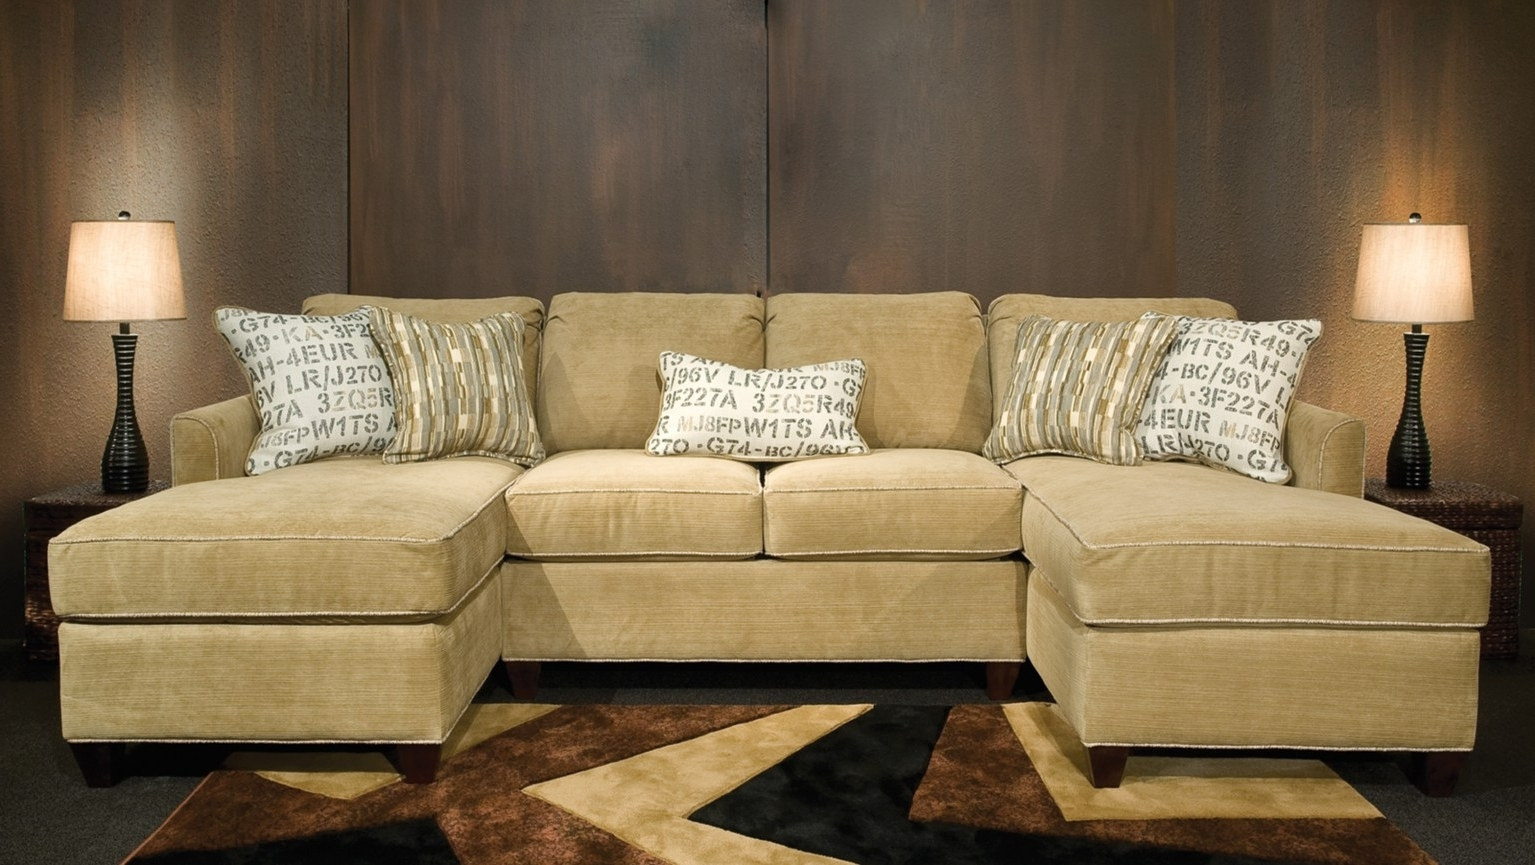 Most Recent Convertible Furniture For Small Spaces Small Sectional Sofa Ikea Intended For Inexpensive Sectional Sofas For Small Spaces (View 4 of 20)